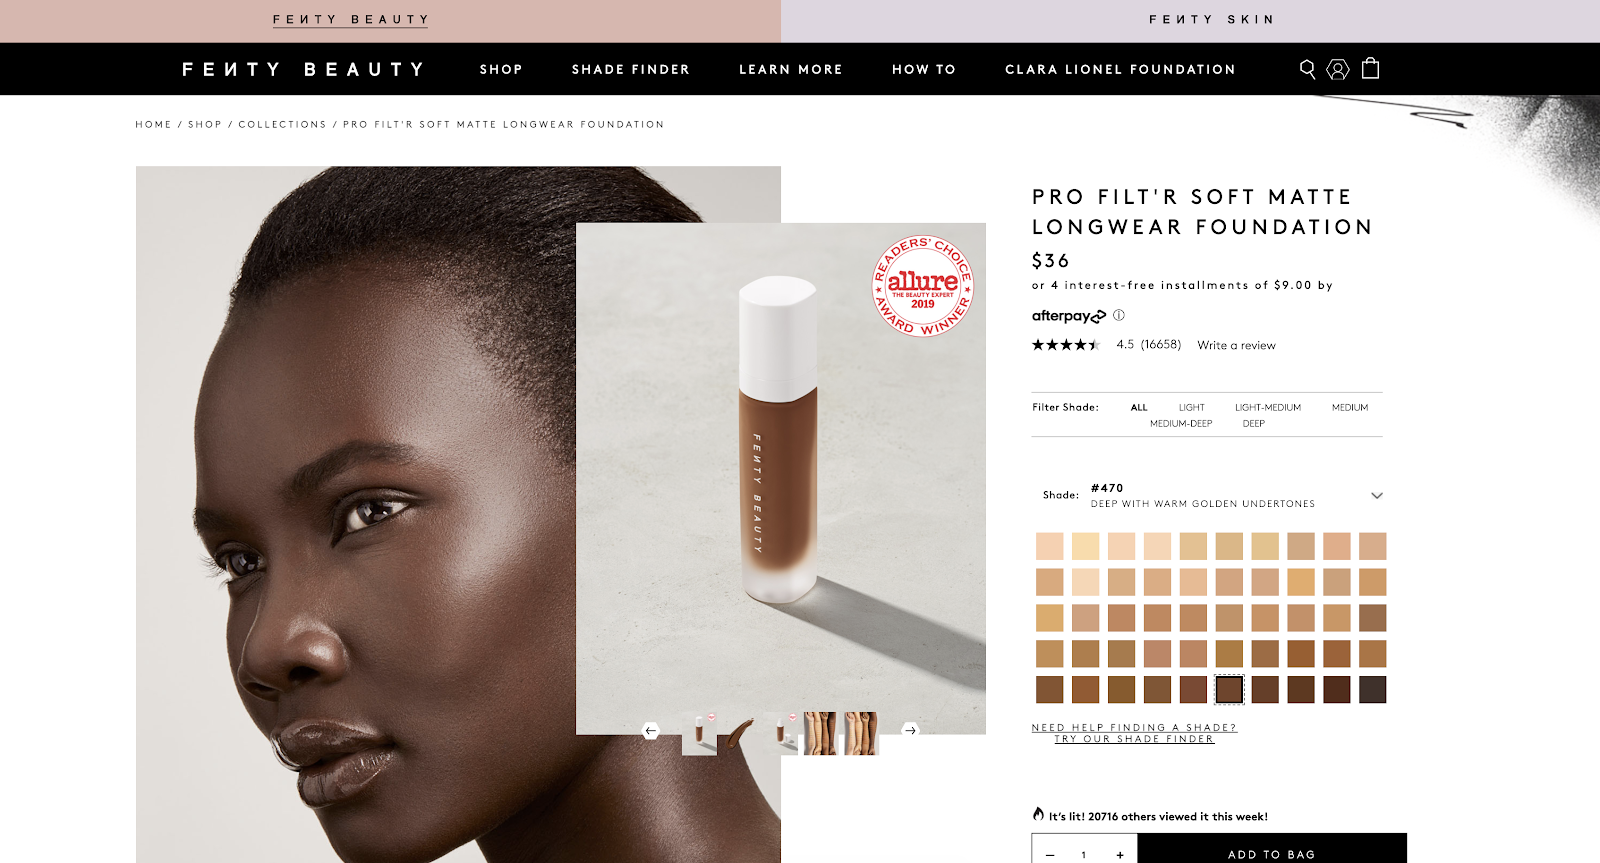 Fenty Beauty image for 3 Ways To Copy Companies With The Best Customer Experience